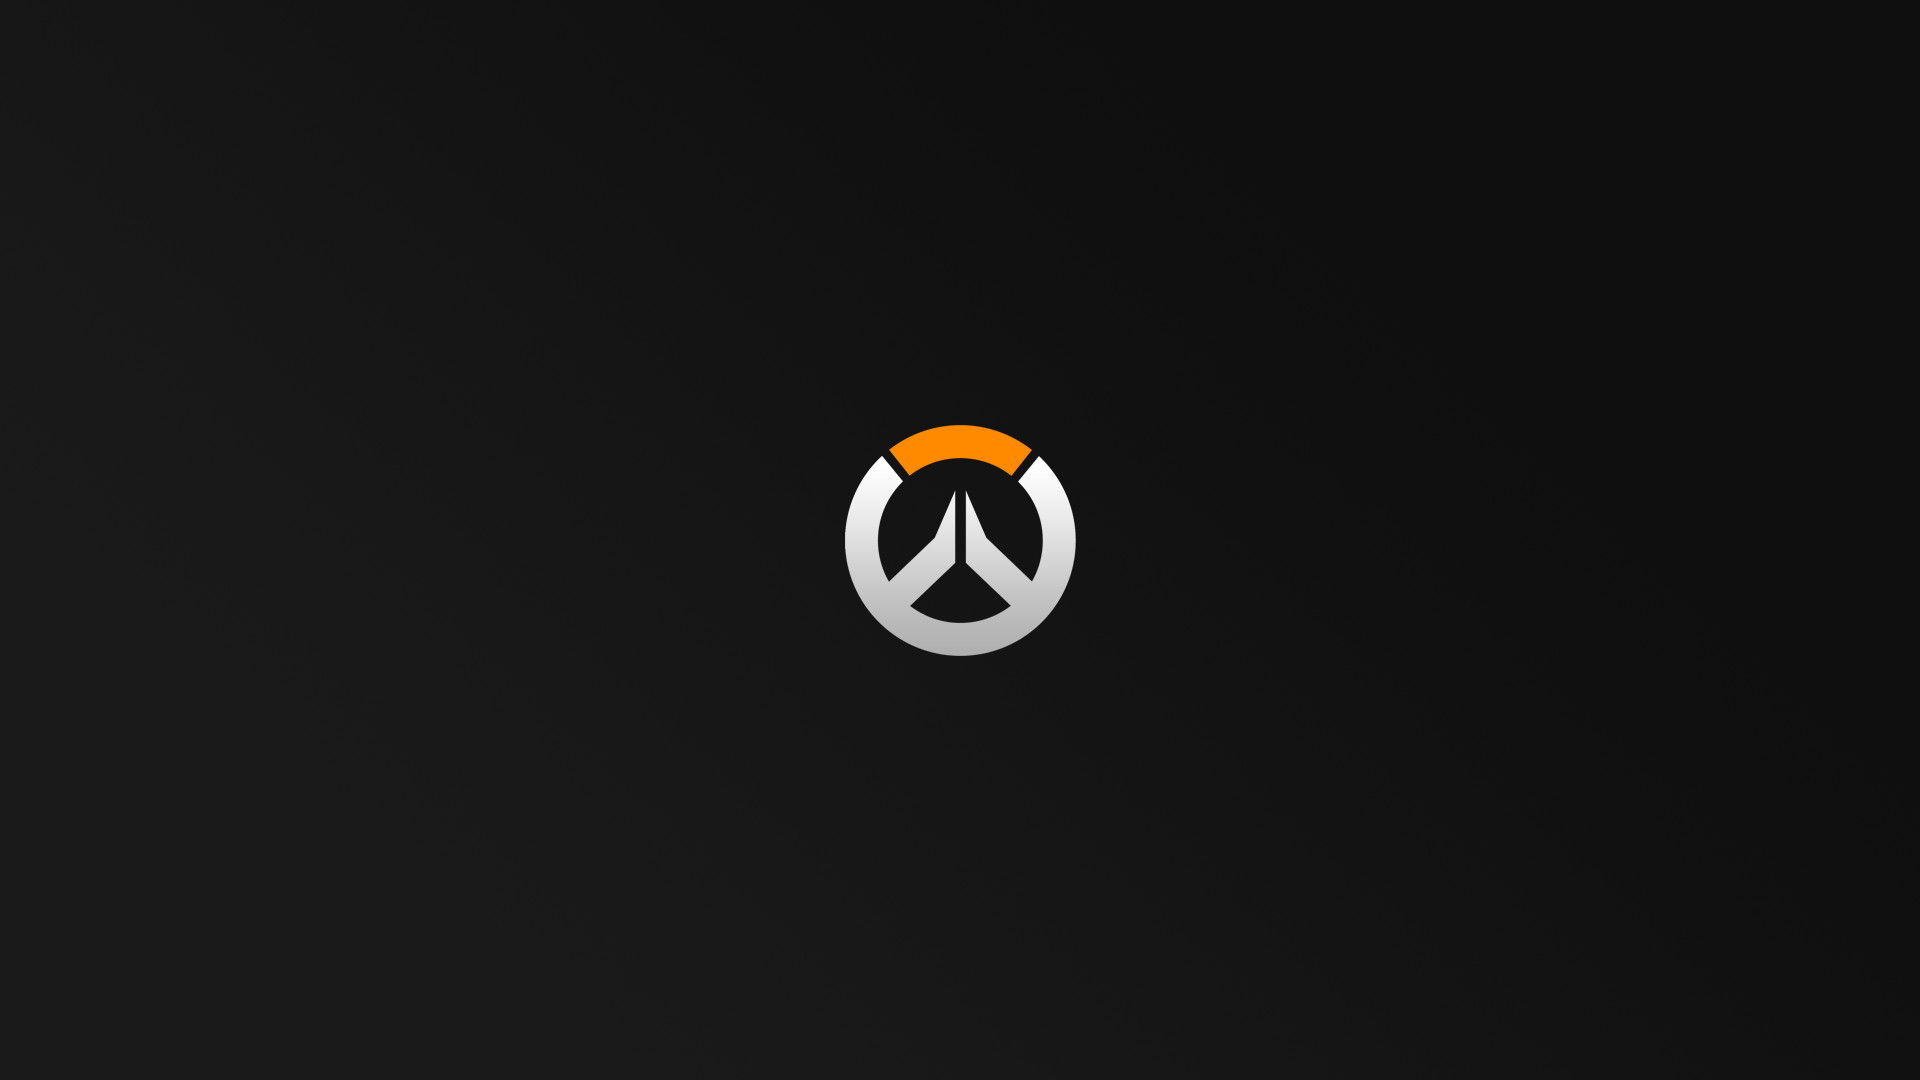 Res: 1920x1080, Best Overwatch Wallpapers in High Quality, Racheal Chatham, 0.9 Mb